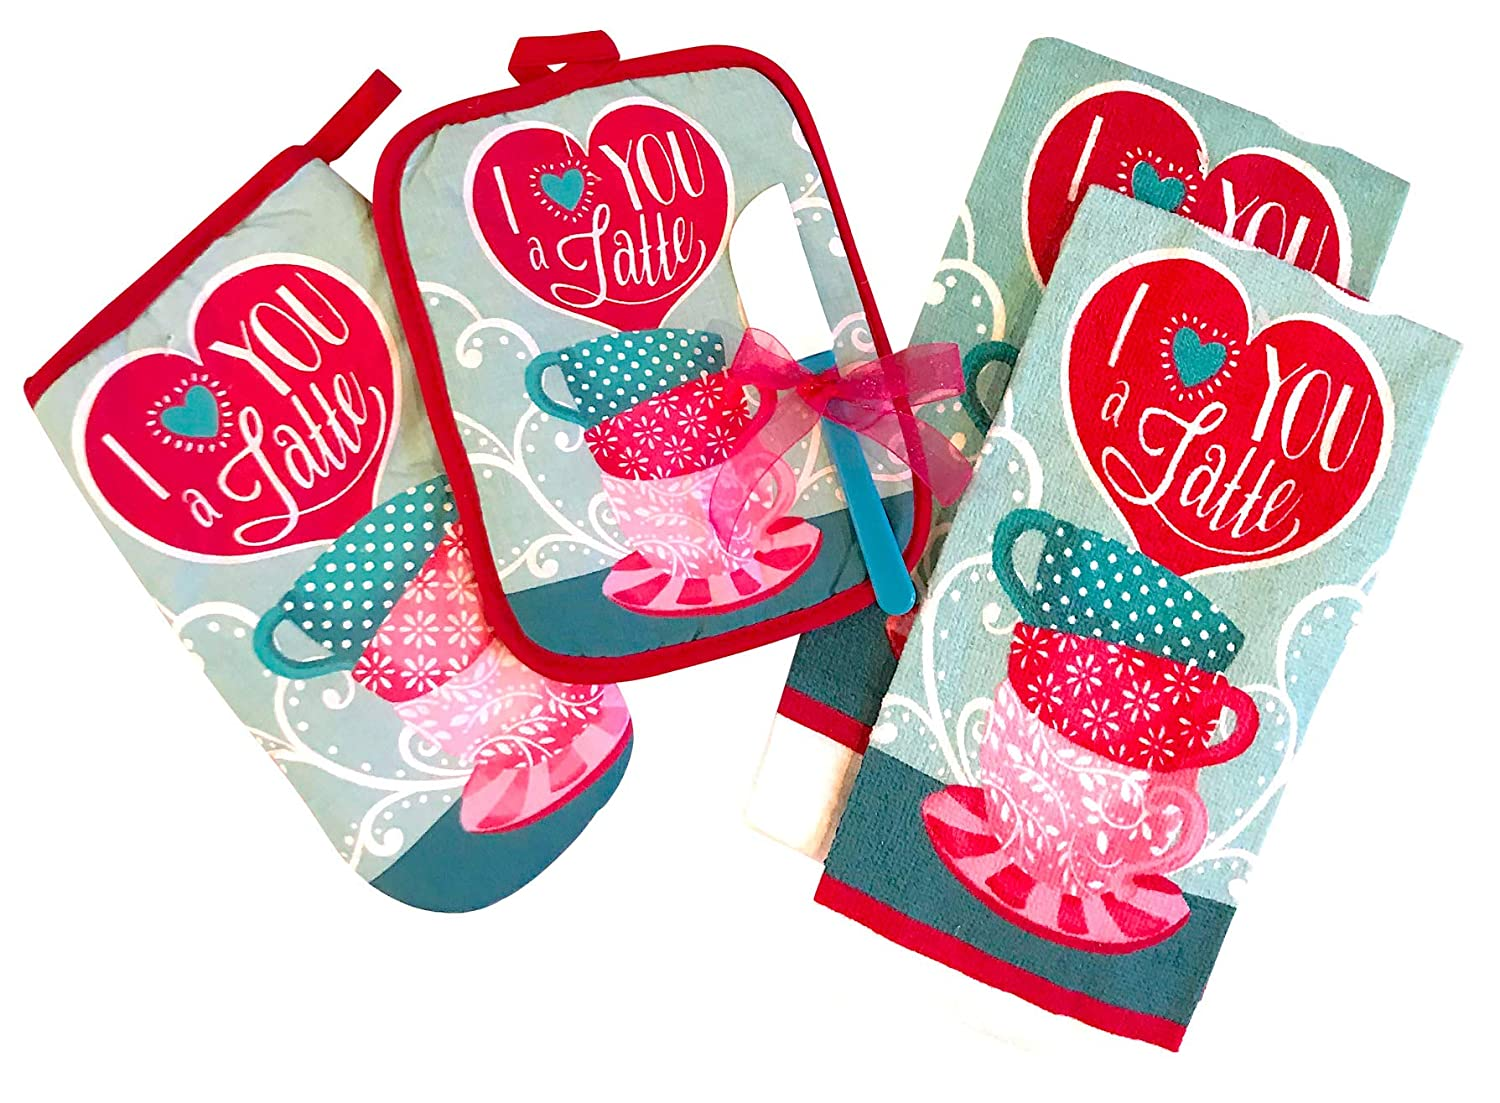 Valentines Kitchen Towels and Oven Set: 2 Towels, 1 Pot Holder, 1 Oven Mitt with Matching Mini Spatula